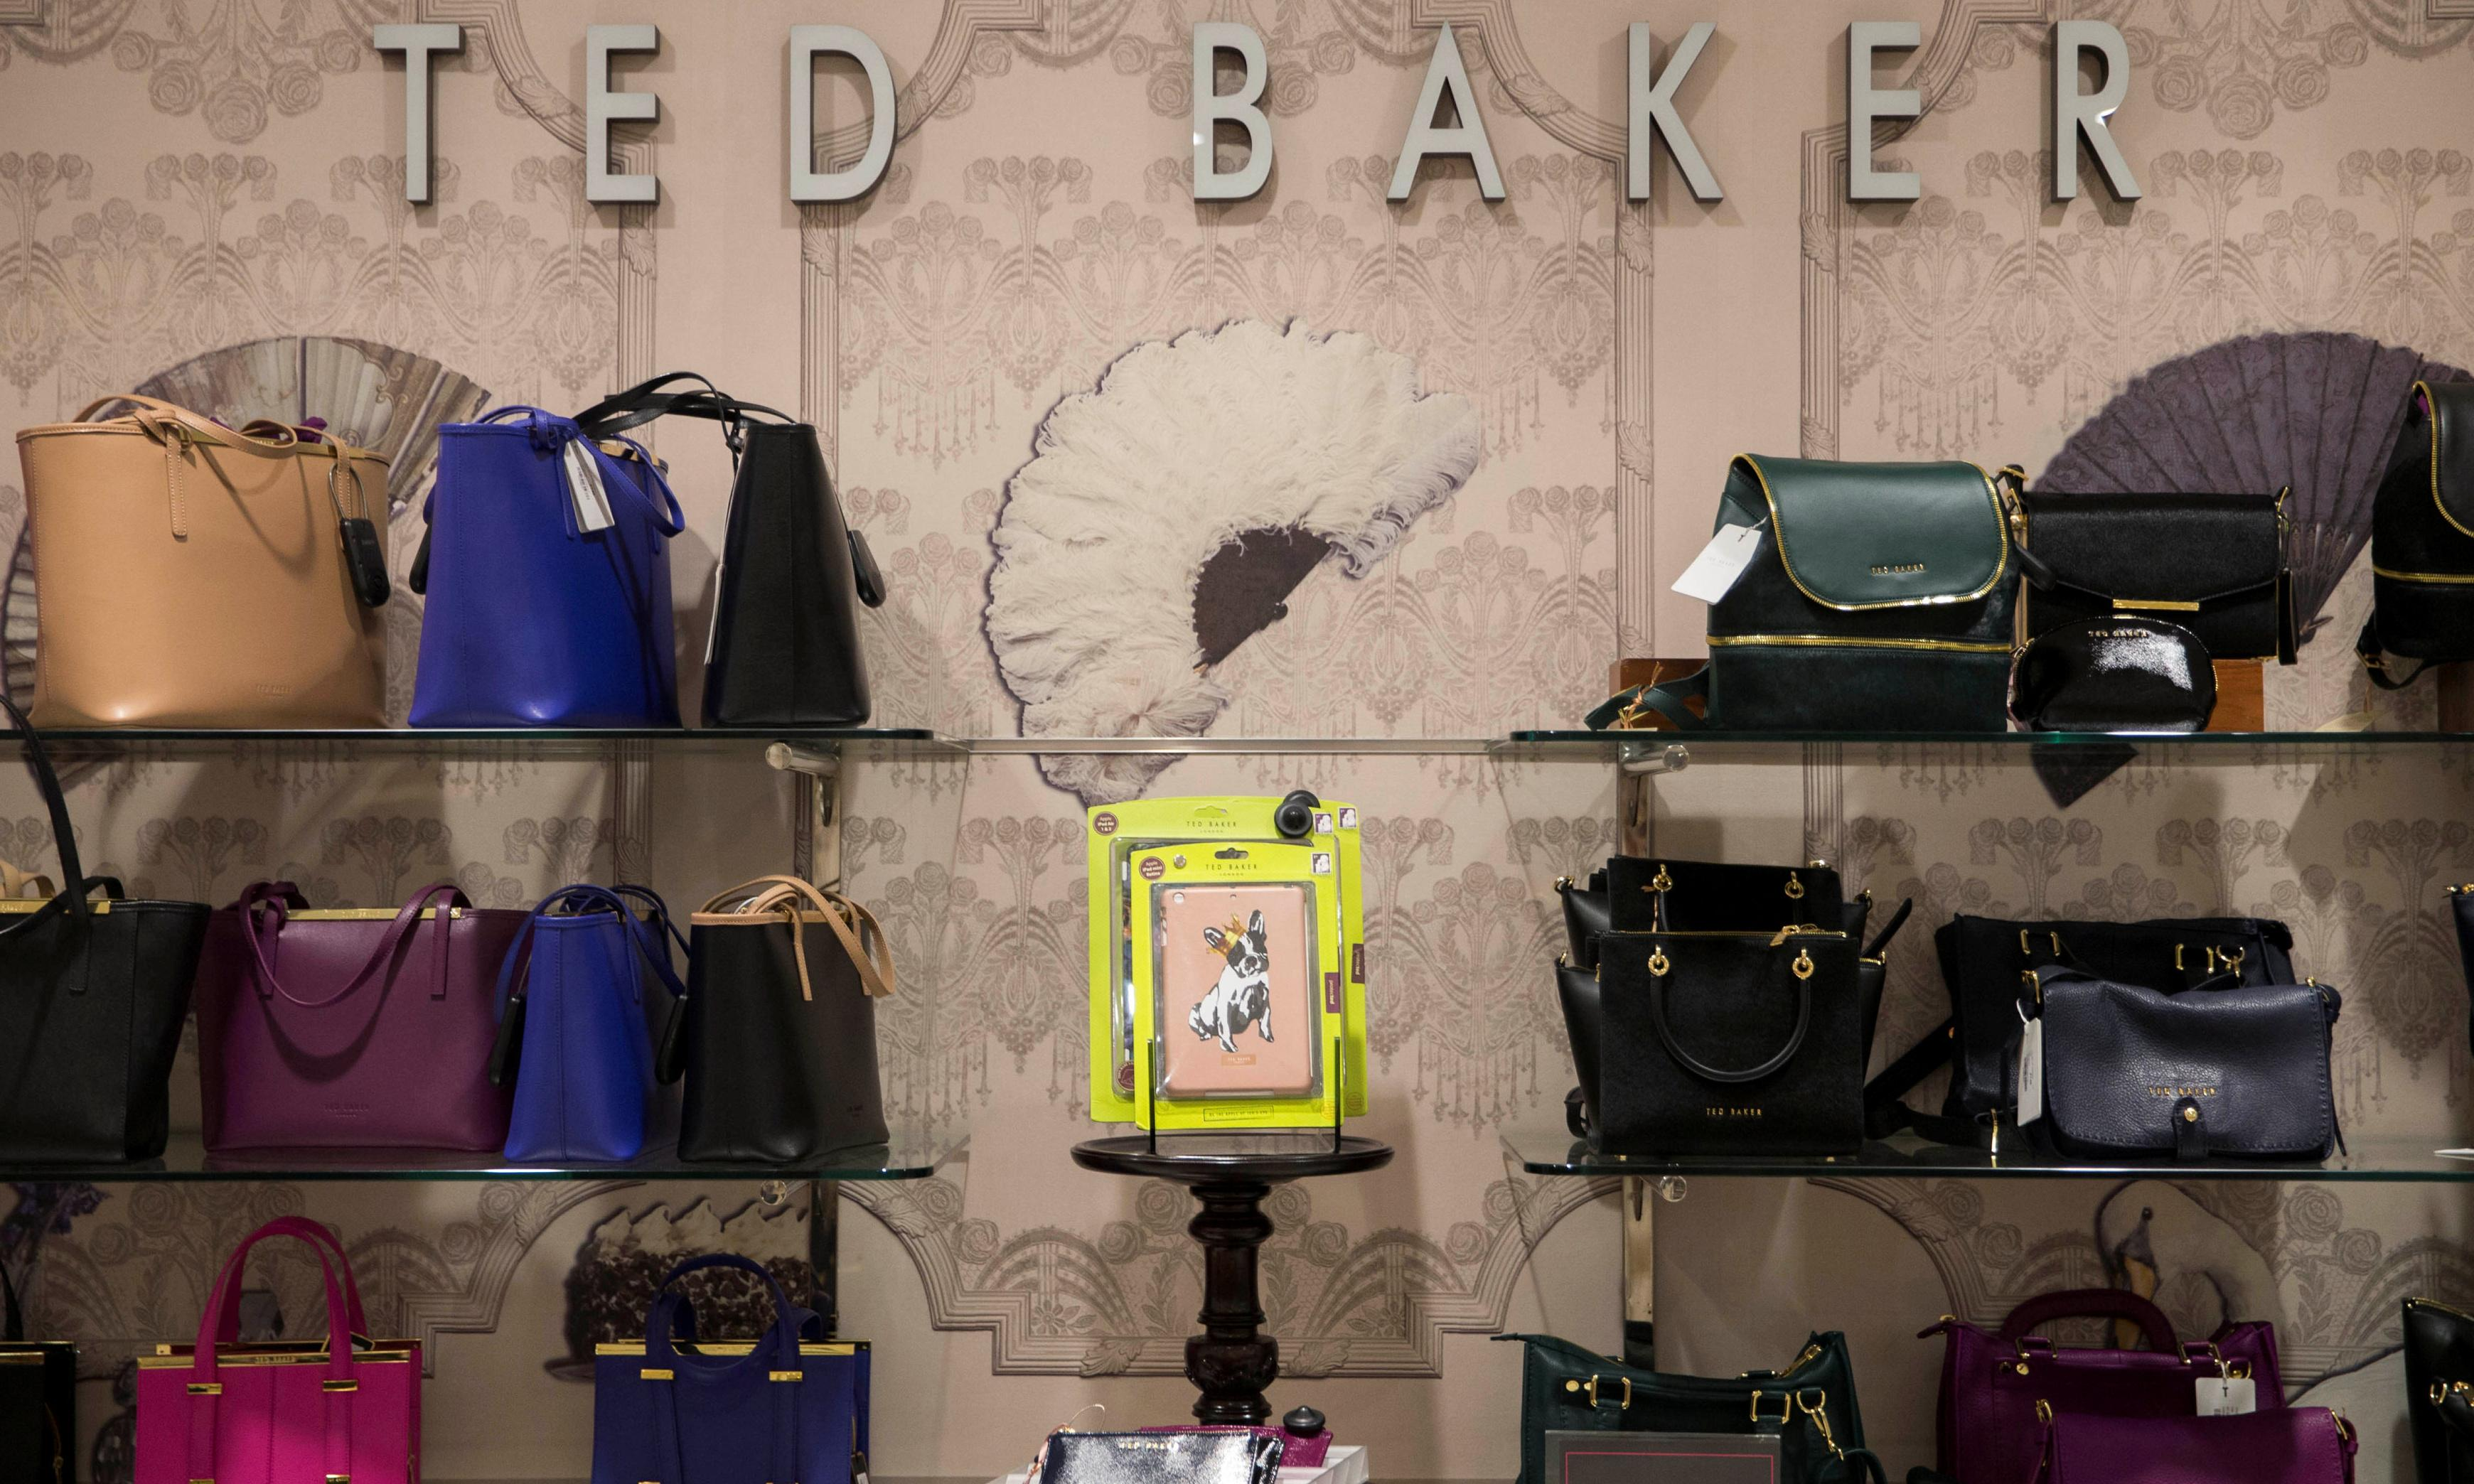 5ee2d5573a1d Google News - Ted Baker staff demand end to forced hugging - Overview